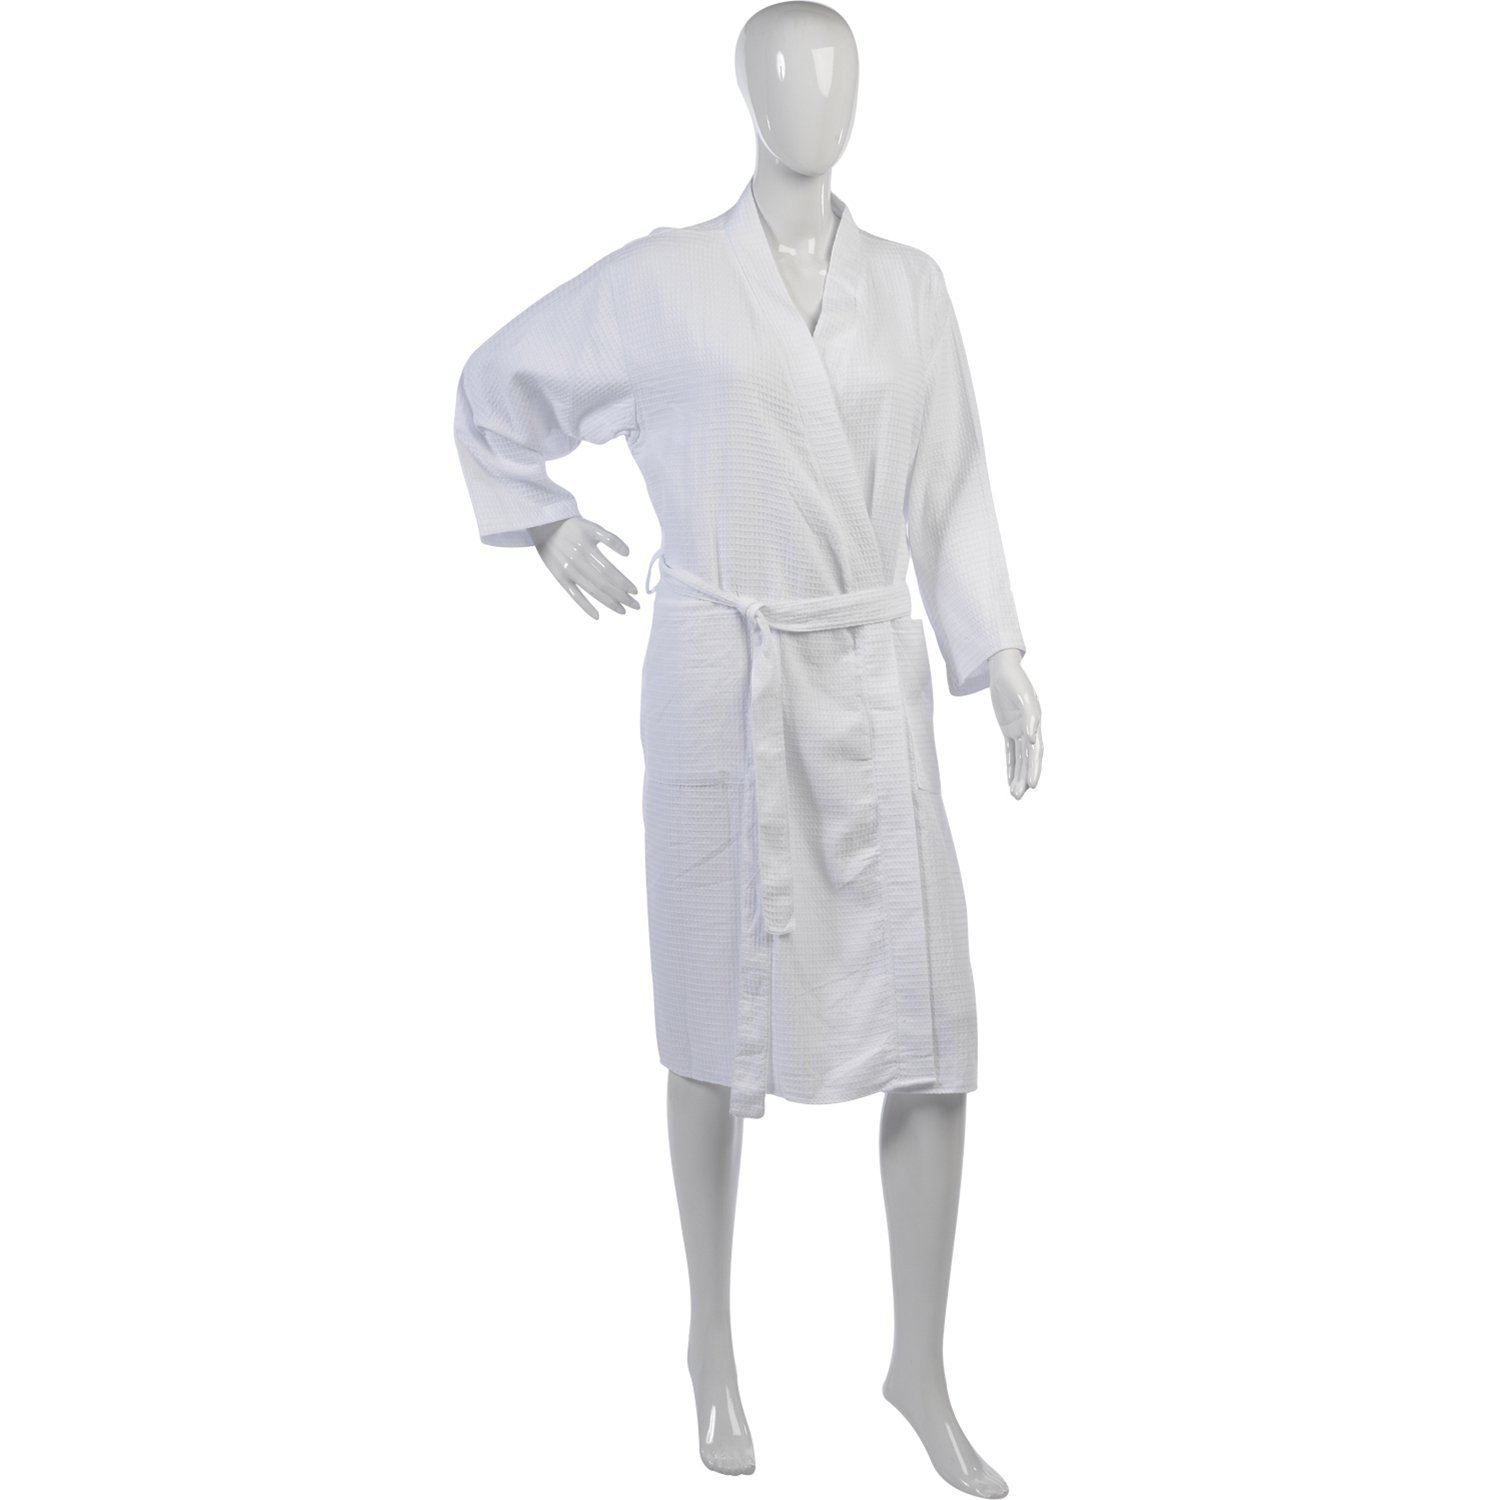 feb75536e4 Get Quotations · Ladies Lightweight Waffle Dressing Gown 100% Cotton Long  Sleeved Wrap Bath Robe